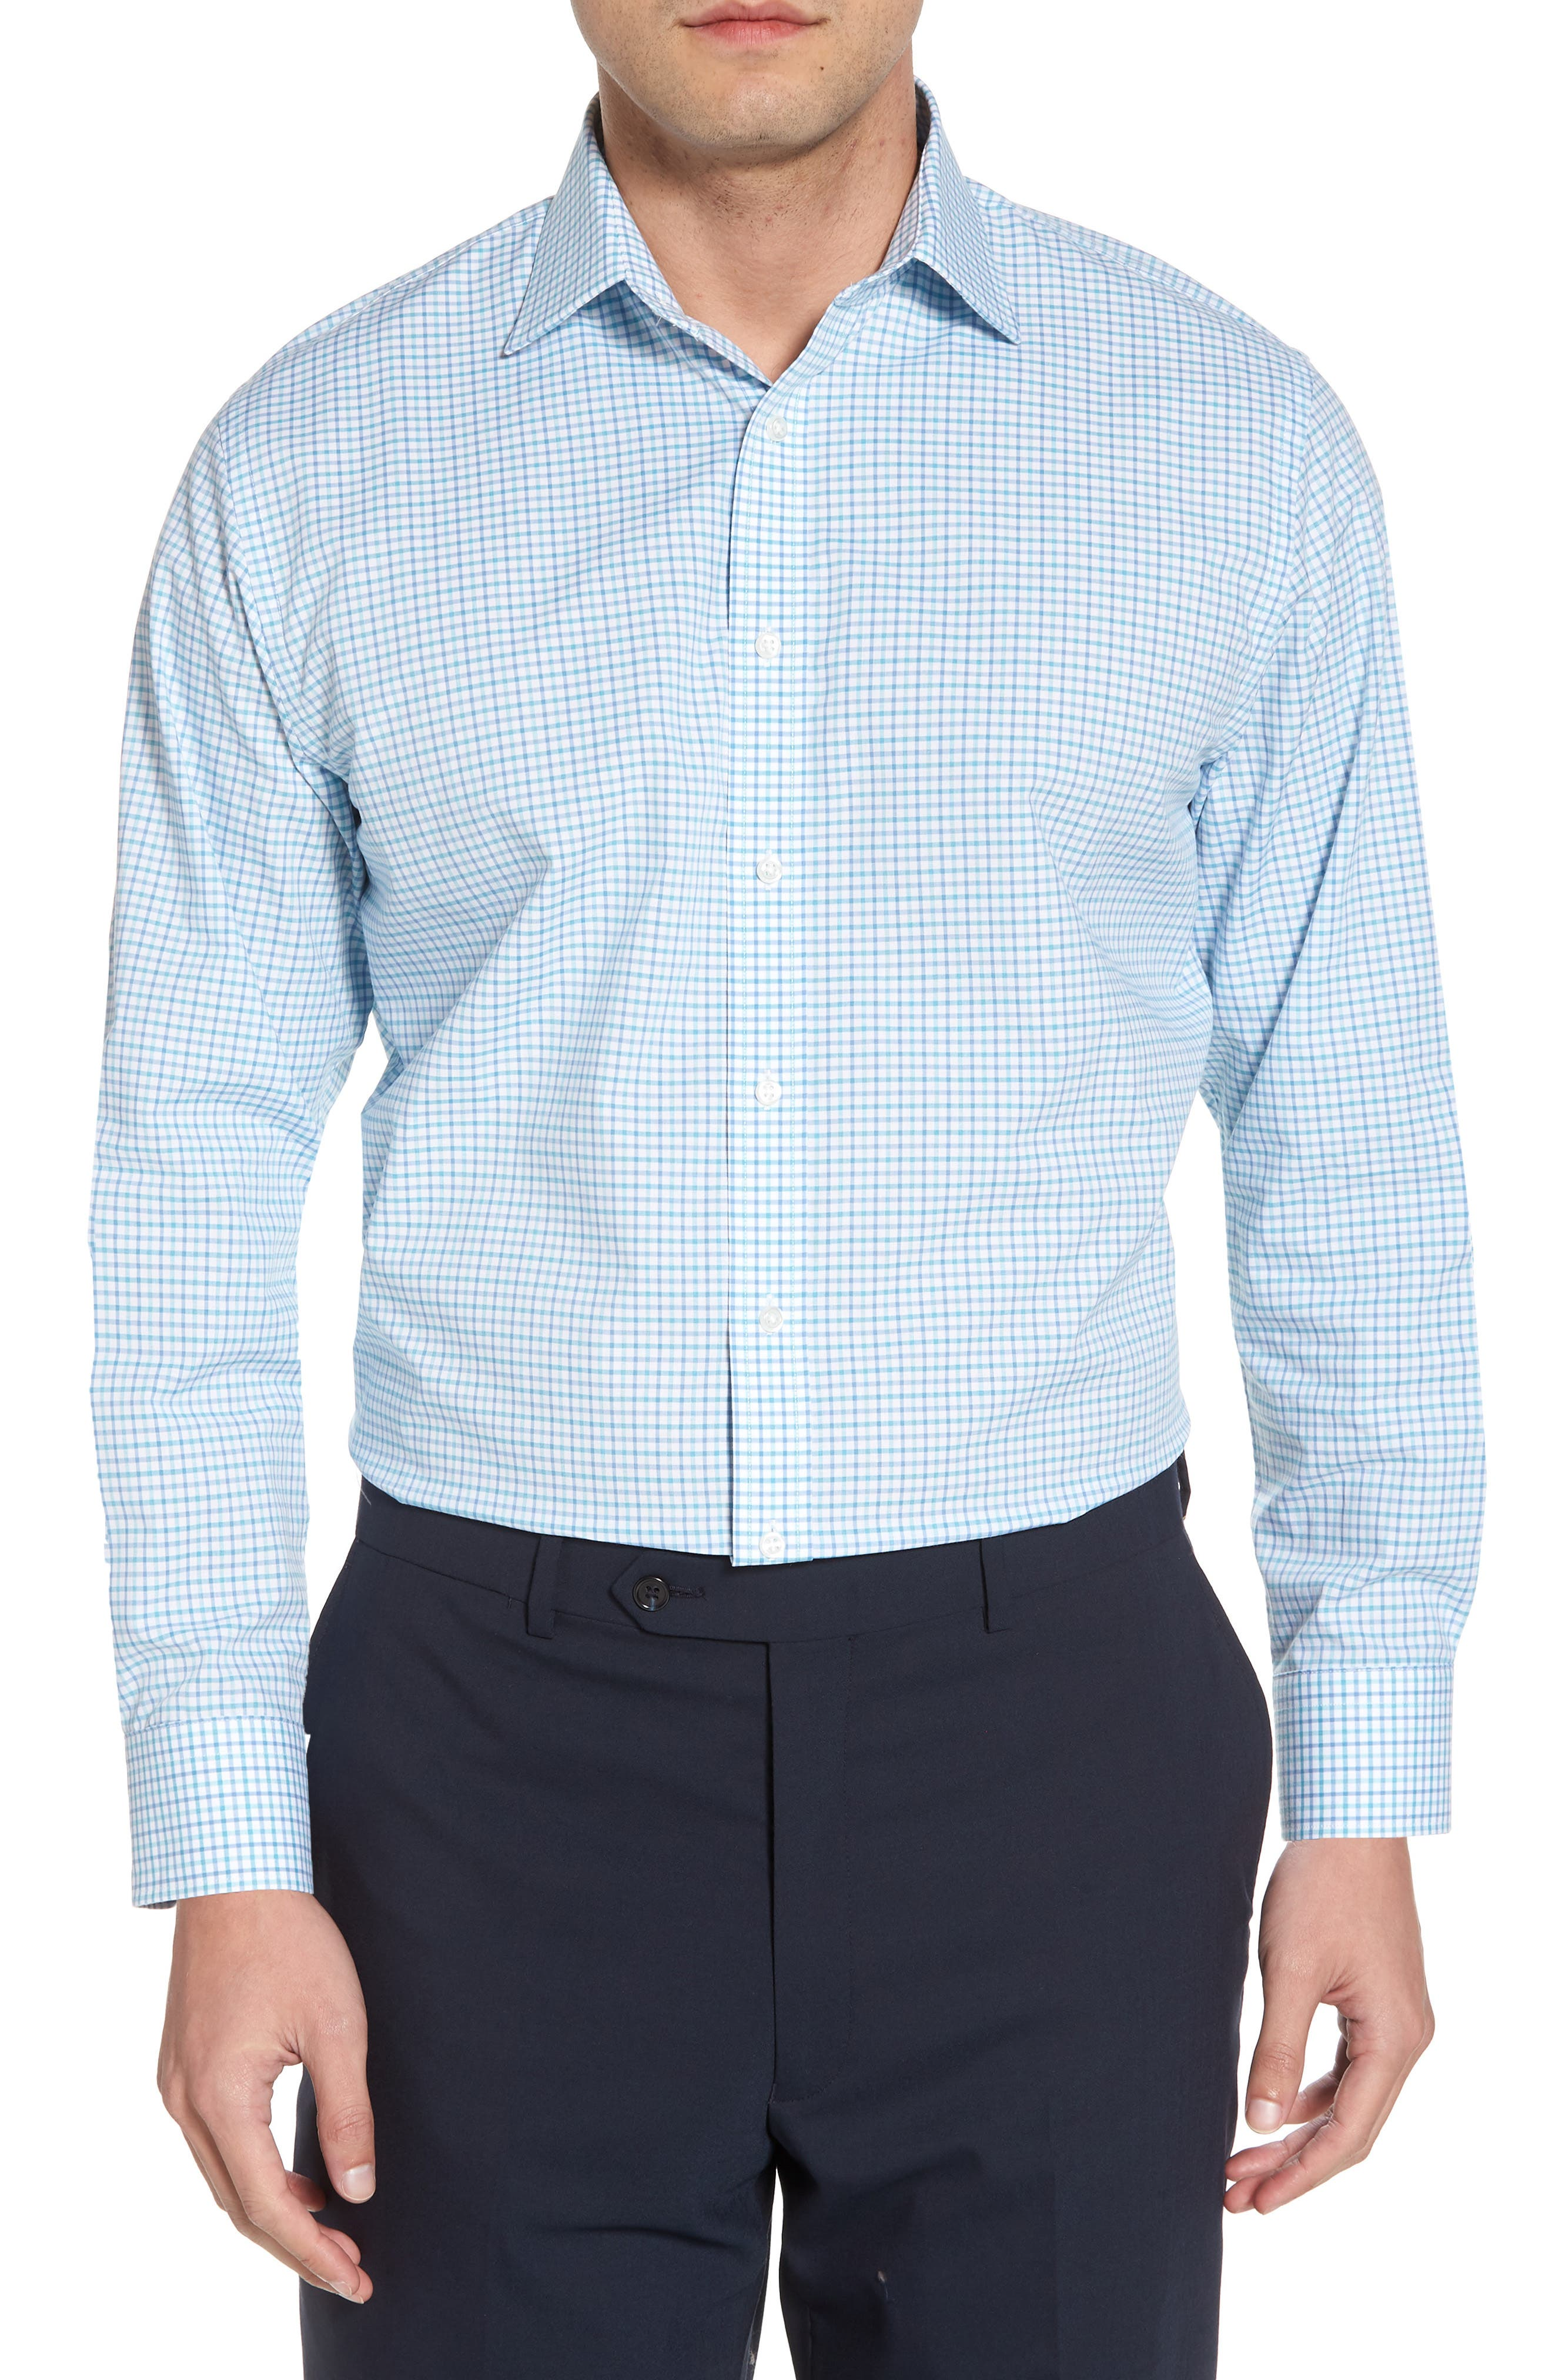 Main Image - Nordstrom Men's Shop Traditional Fit Check Dress Shirt